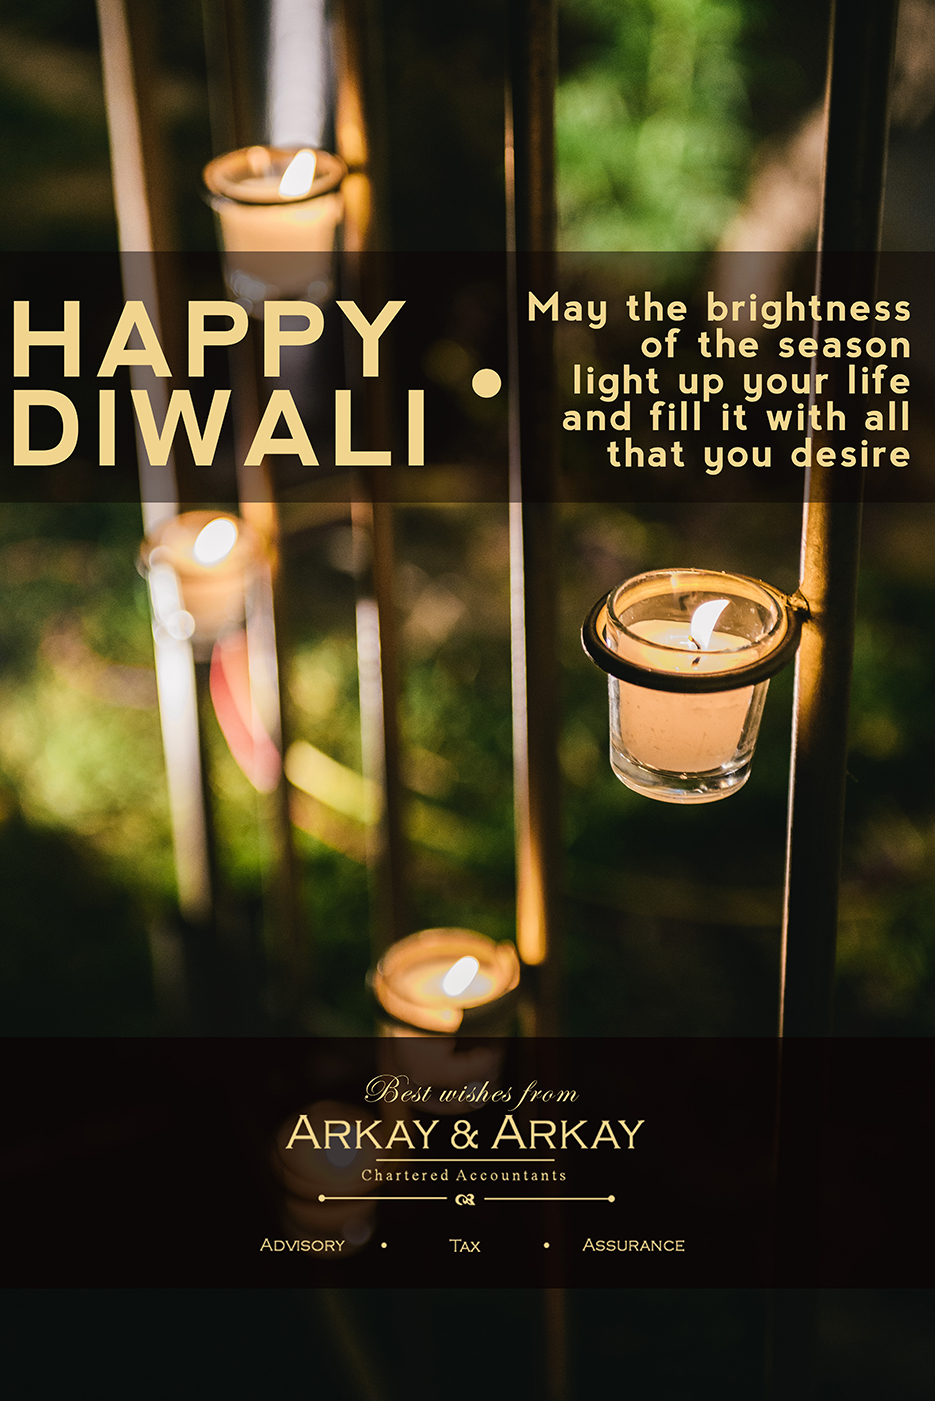 Happy Diwali 2012, Arkay and Arkay Chartered Accountants and Financial Advisors. Photography as captured by photographer Naina Redhu.